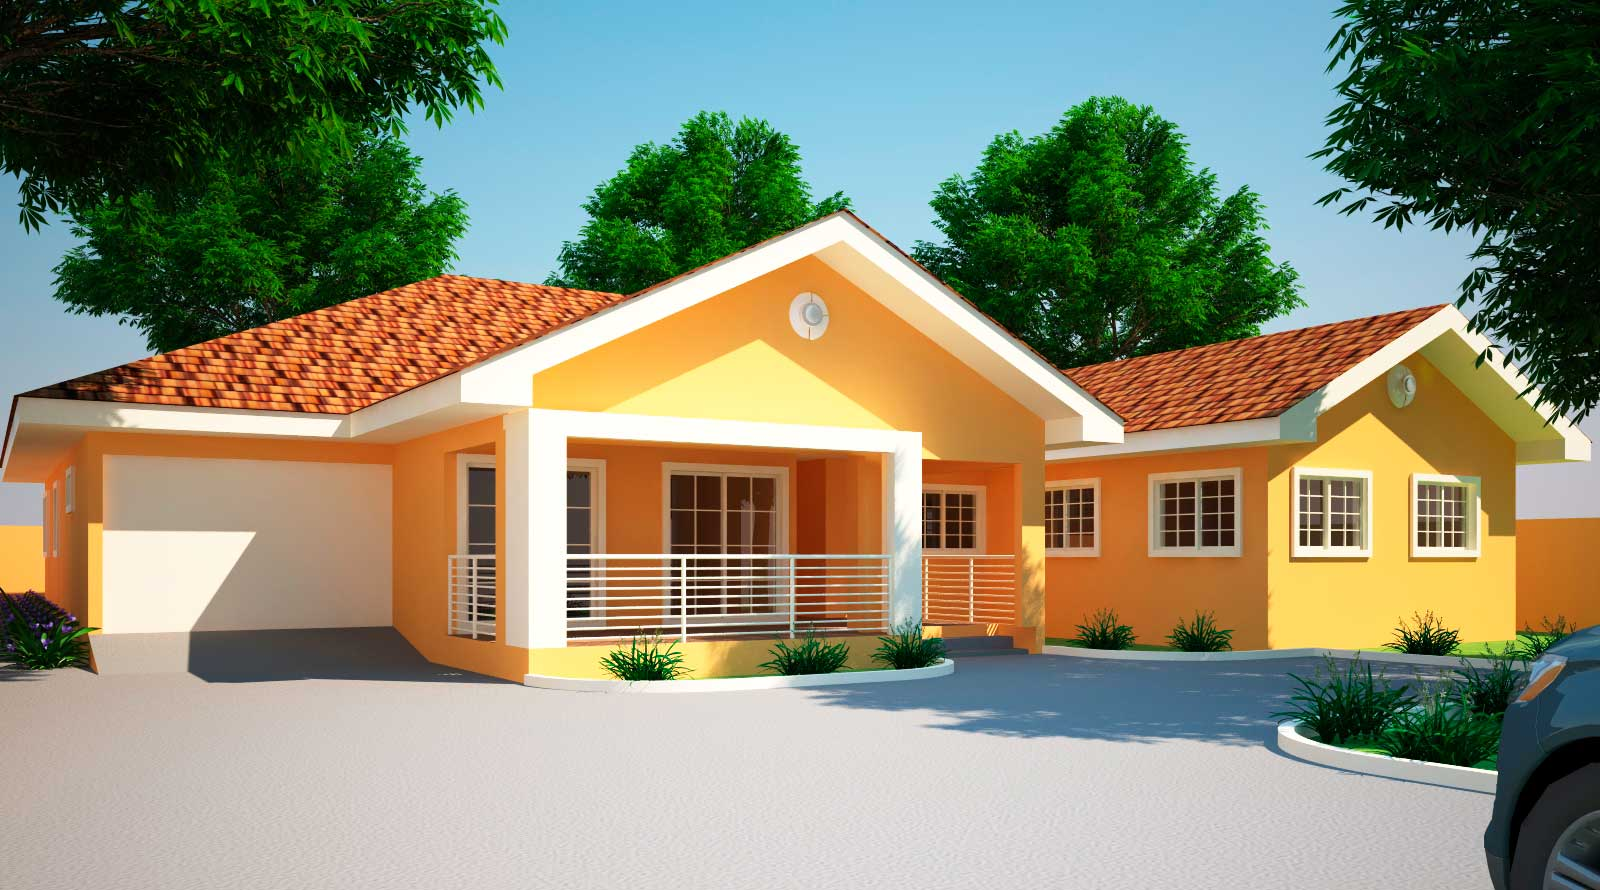 4 Bedroom House Plans Kerala Style 4 Bedroom House Plans